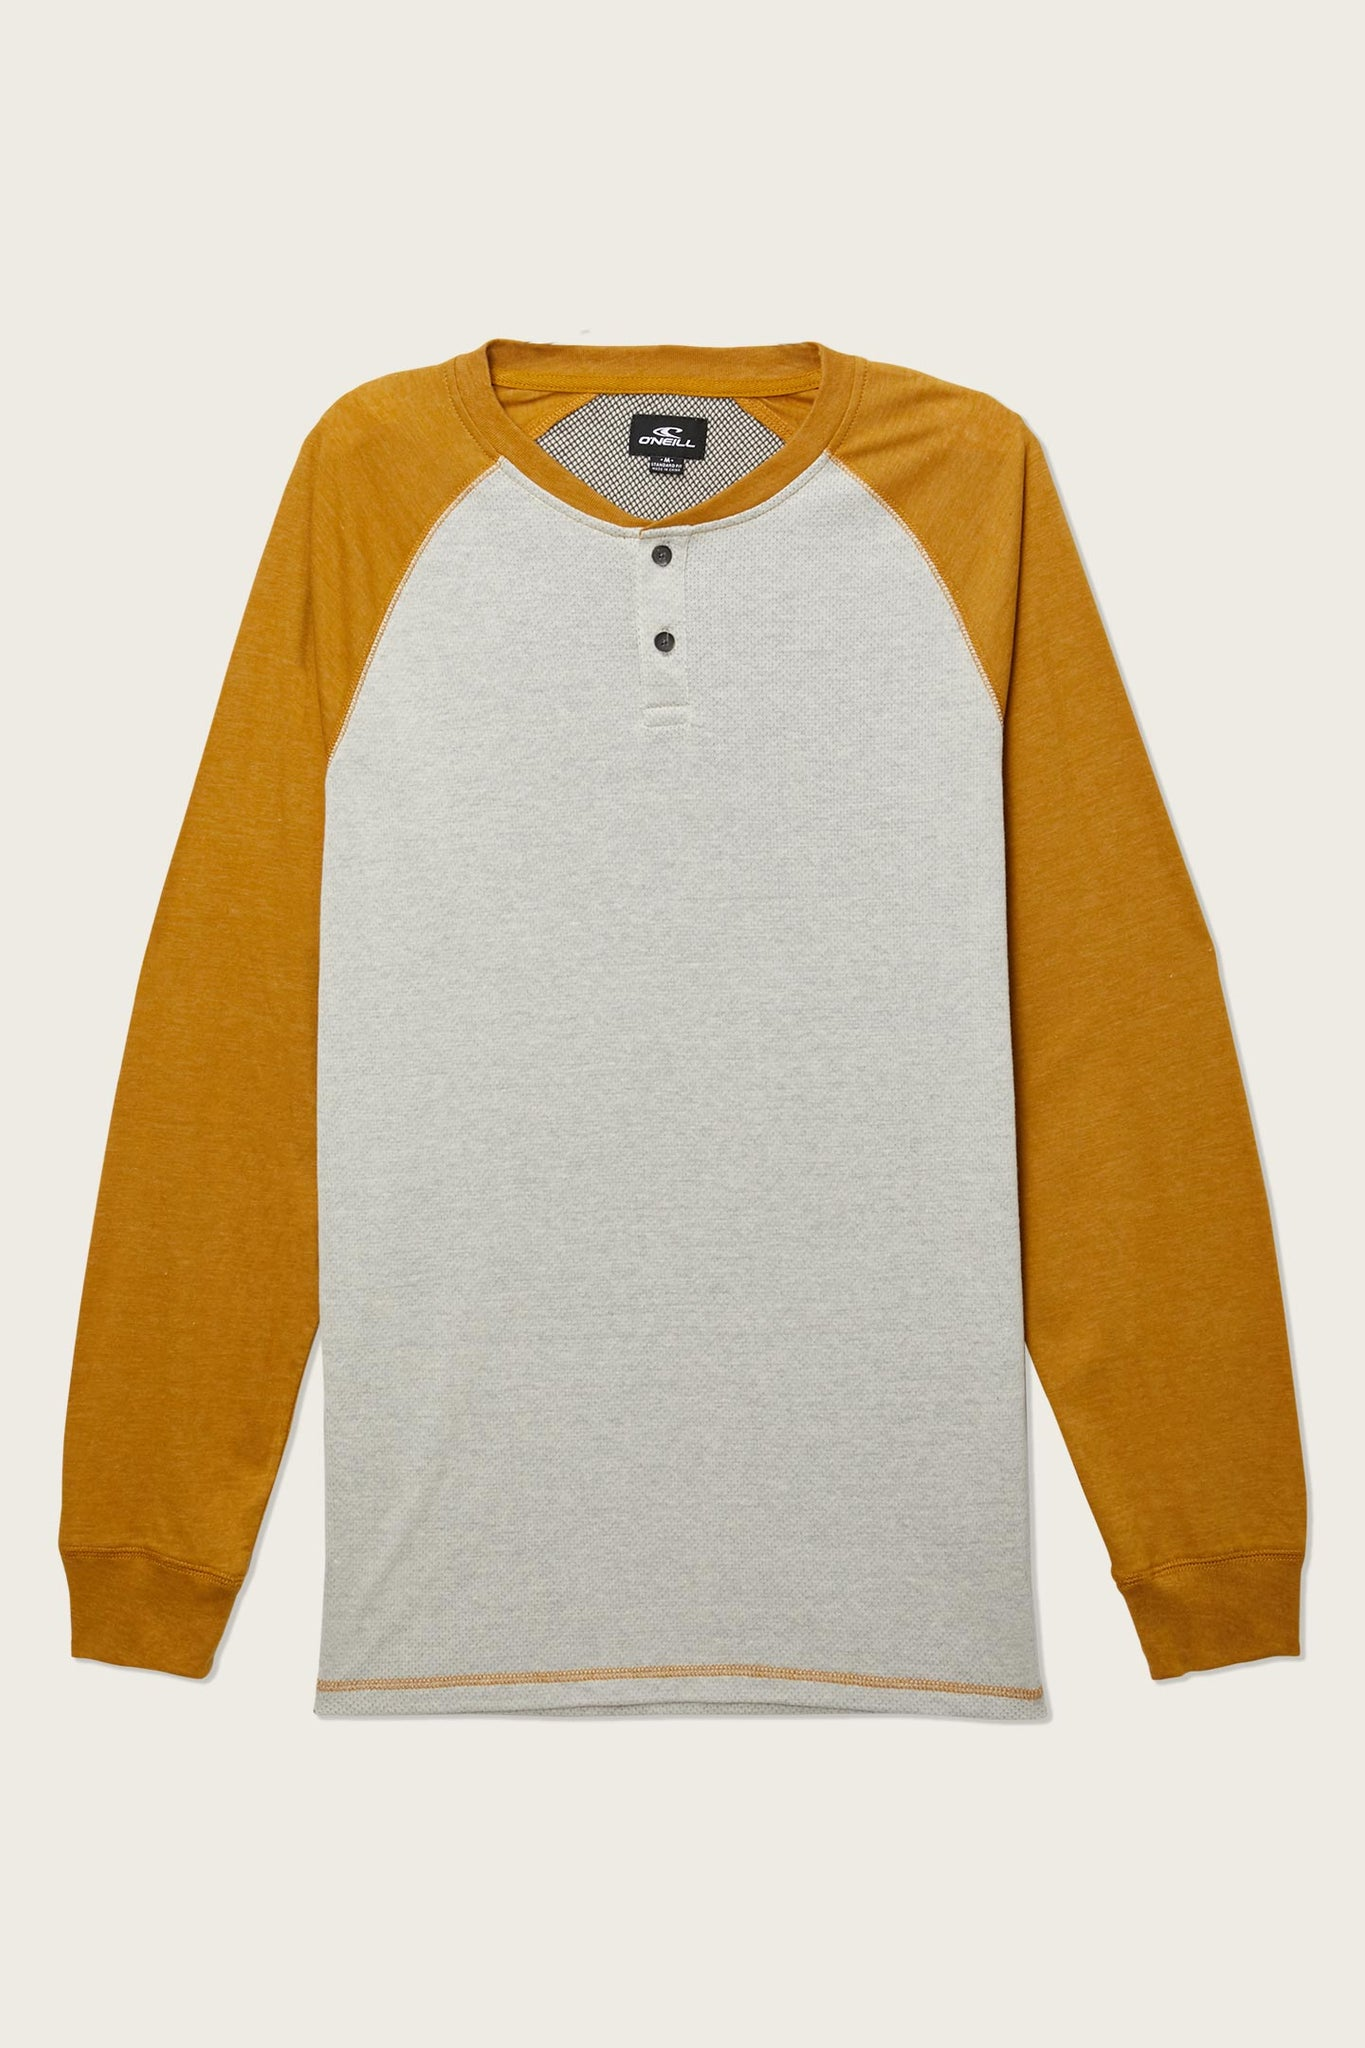 Voiid Henley Shirt | O'Neill Clothing USA